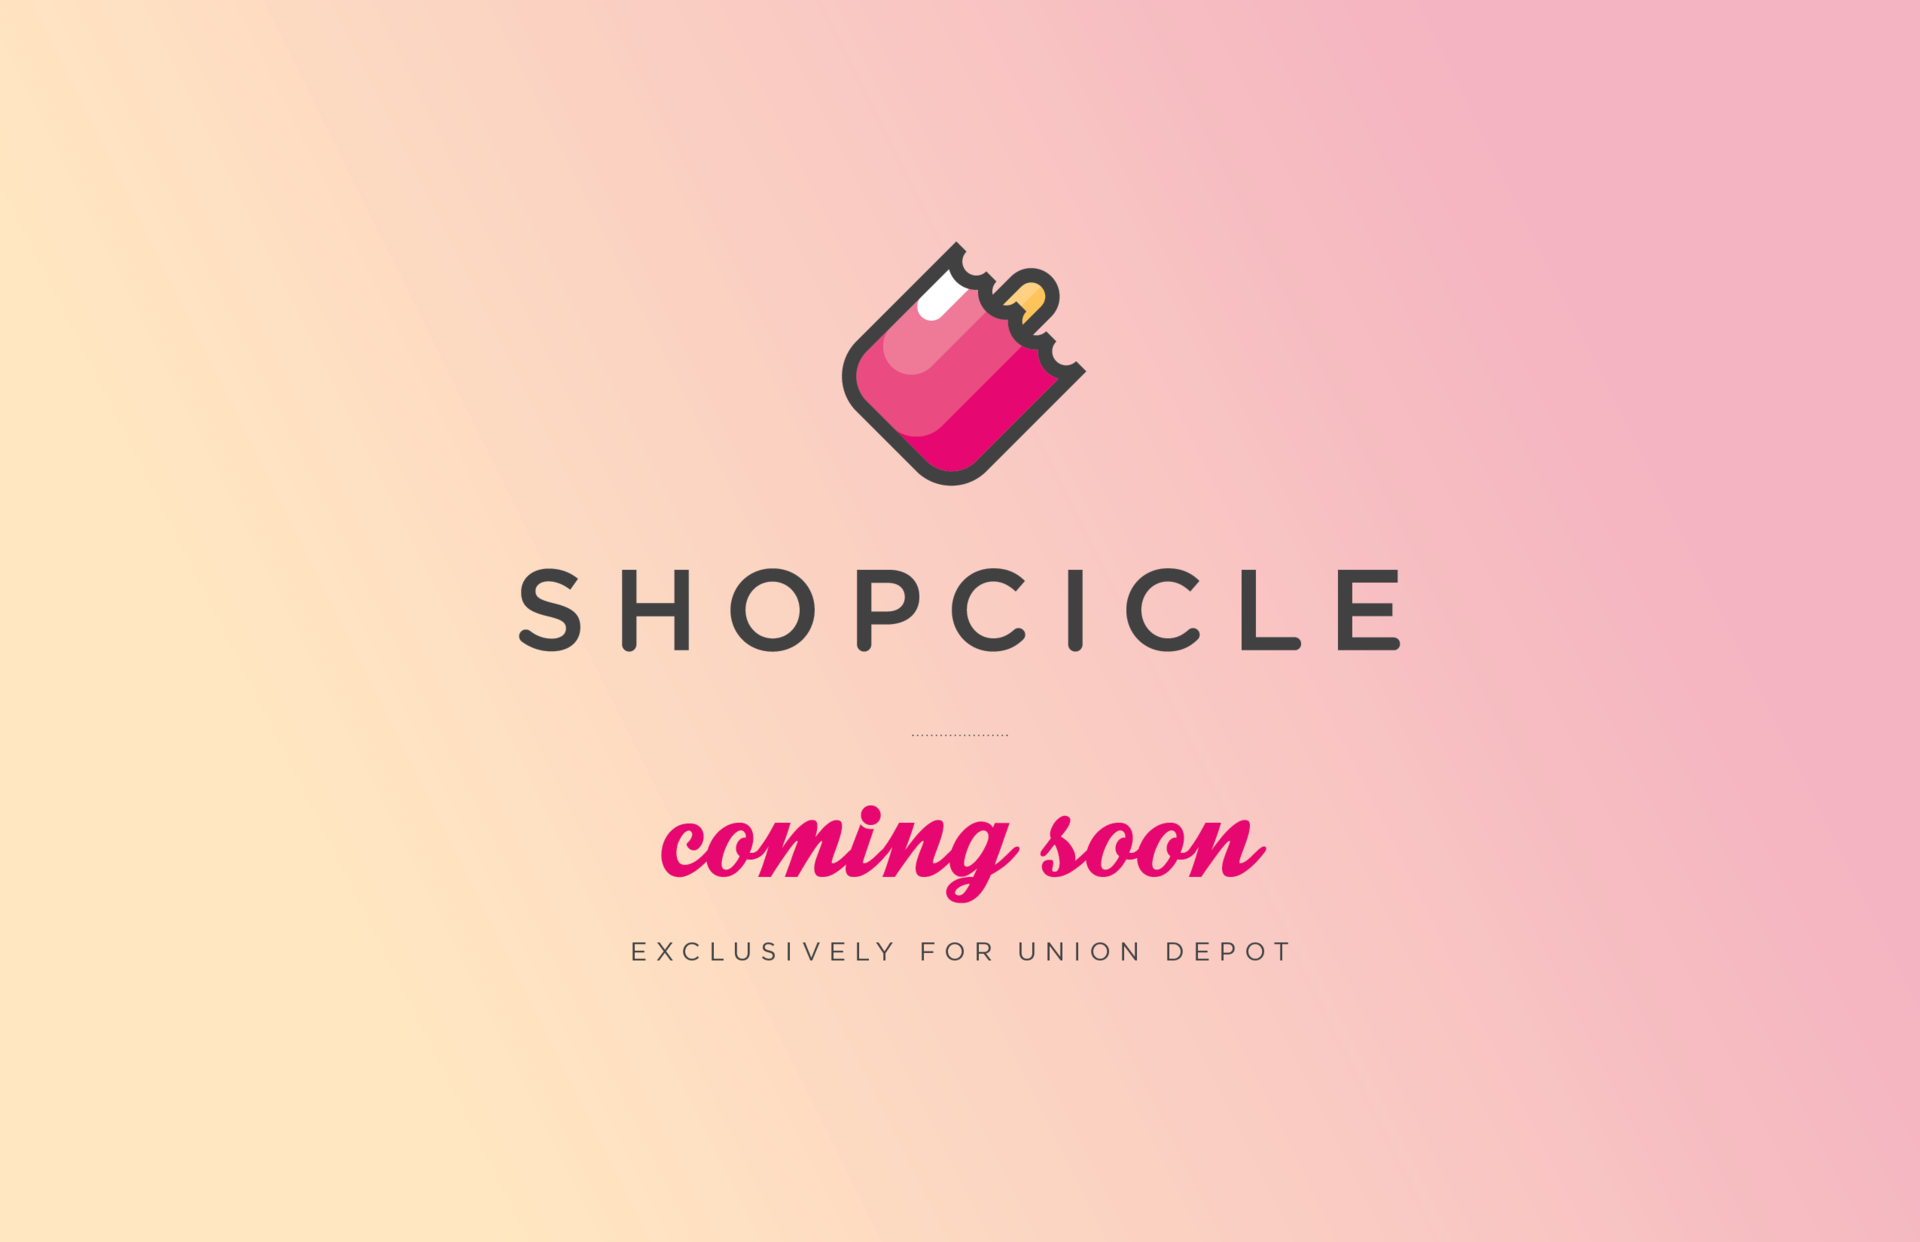 Shopcicle